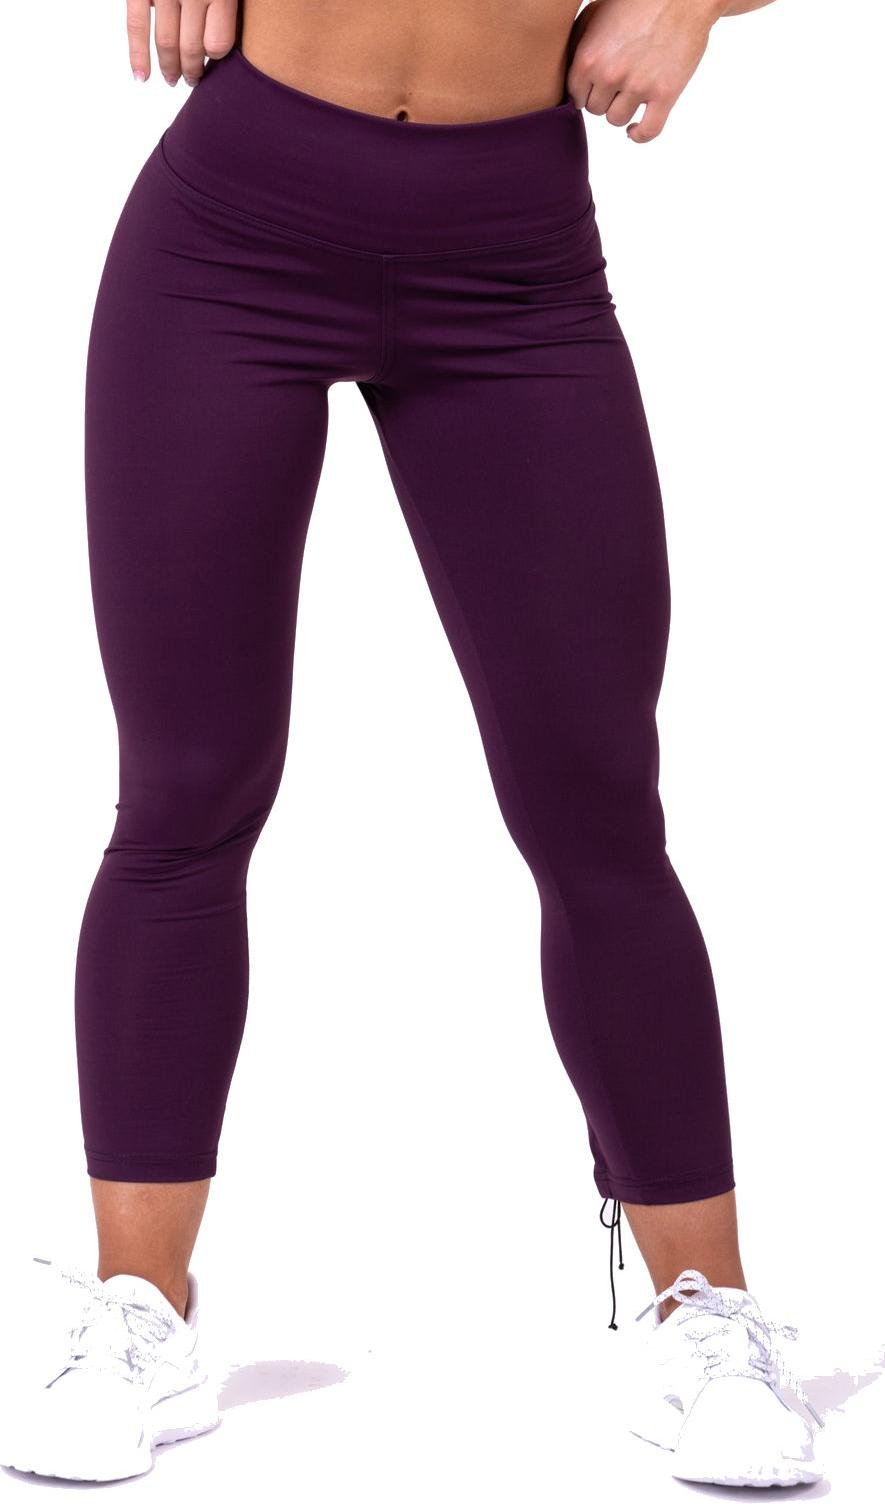 Leggings Nebbia Lace-up 7/8 leggings